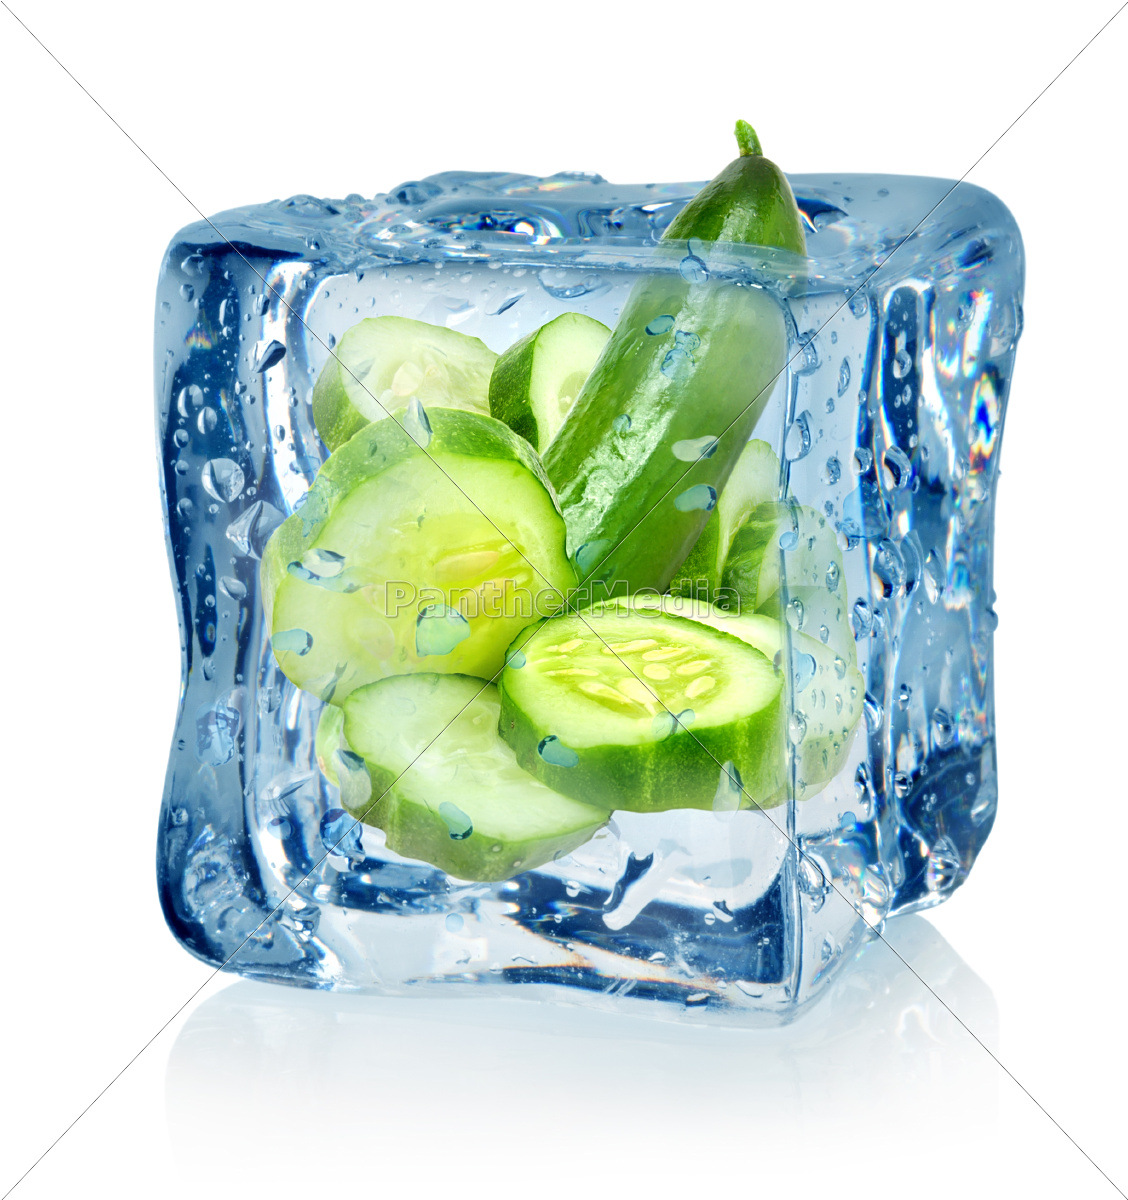 ice, cube, and, cucumber - 10125715